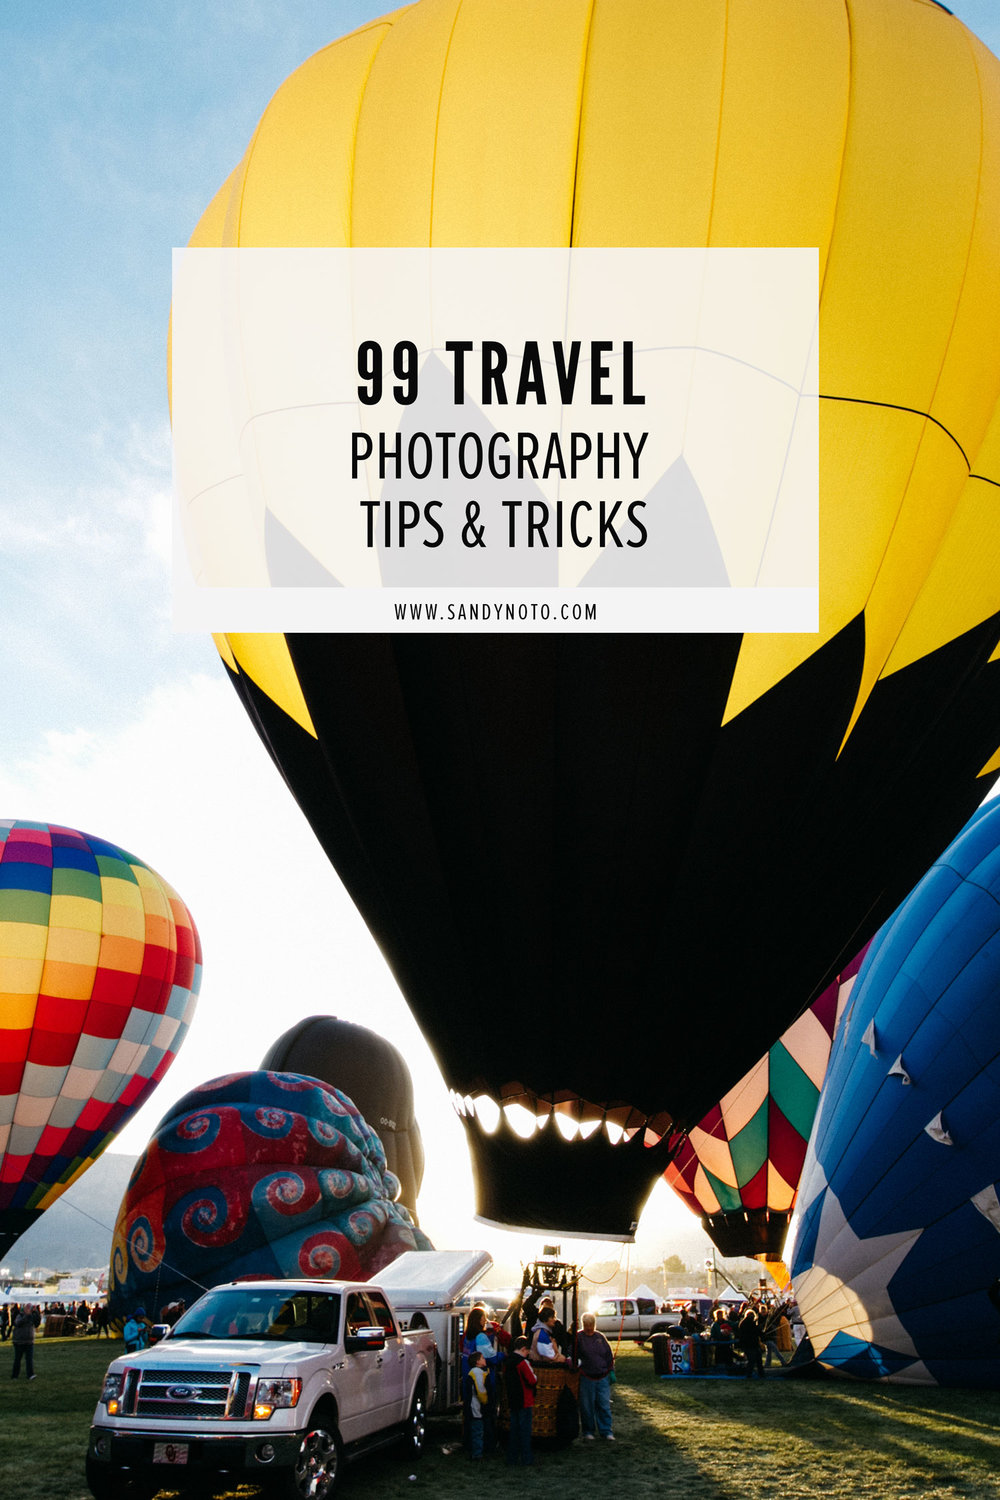 101 Travel Photography Tips & Tricks